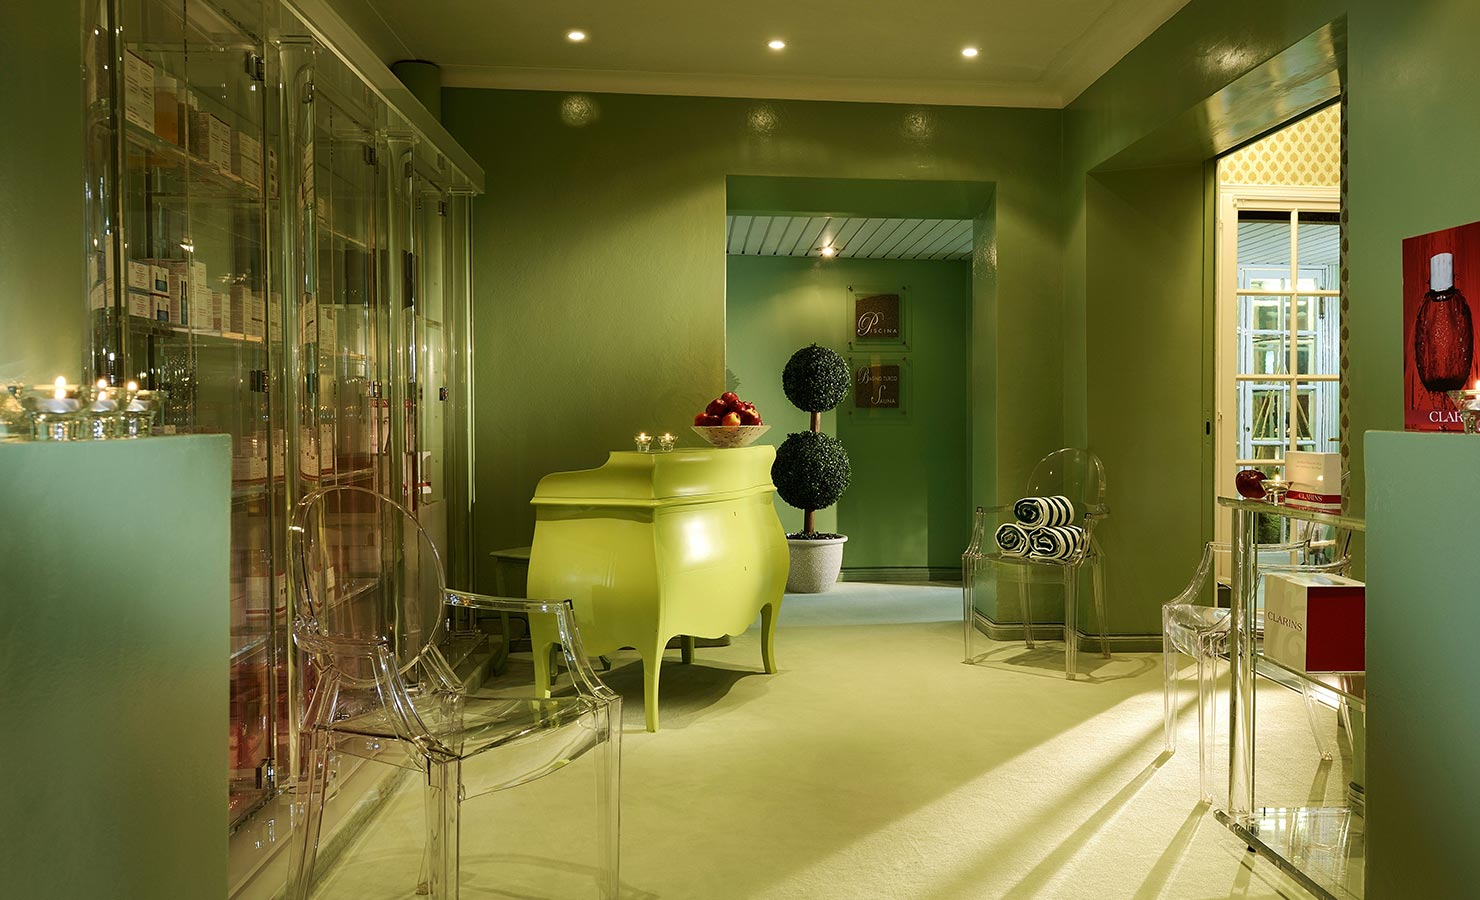 wellness-spa_clarins-beauty-center-lugano_001.jpg